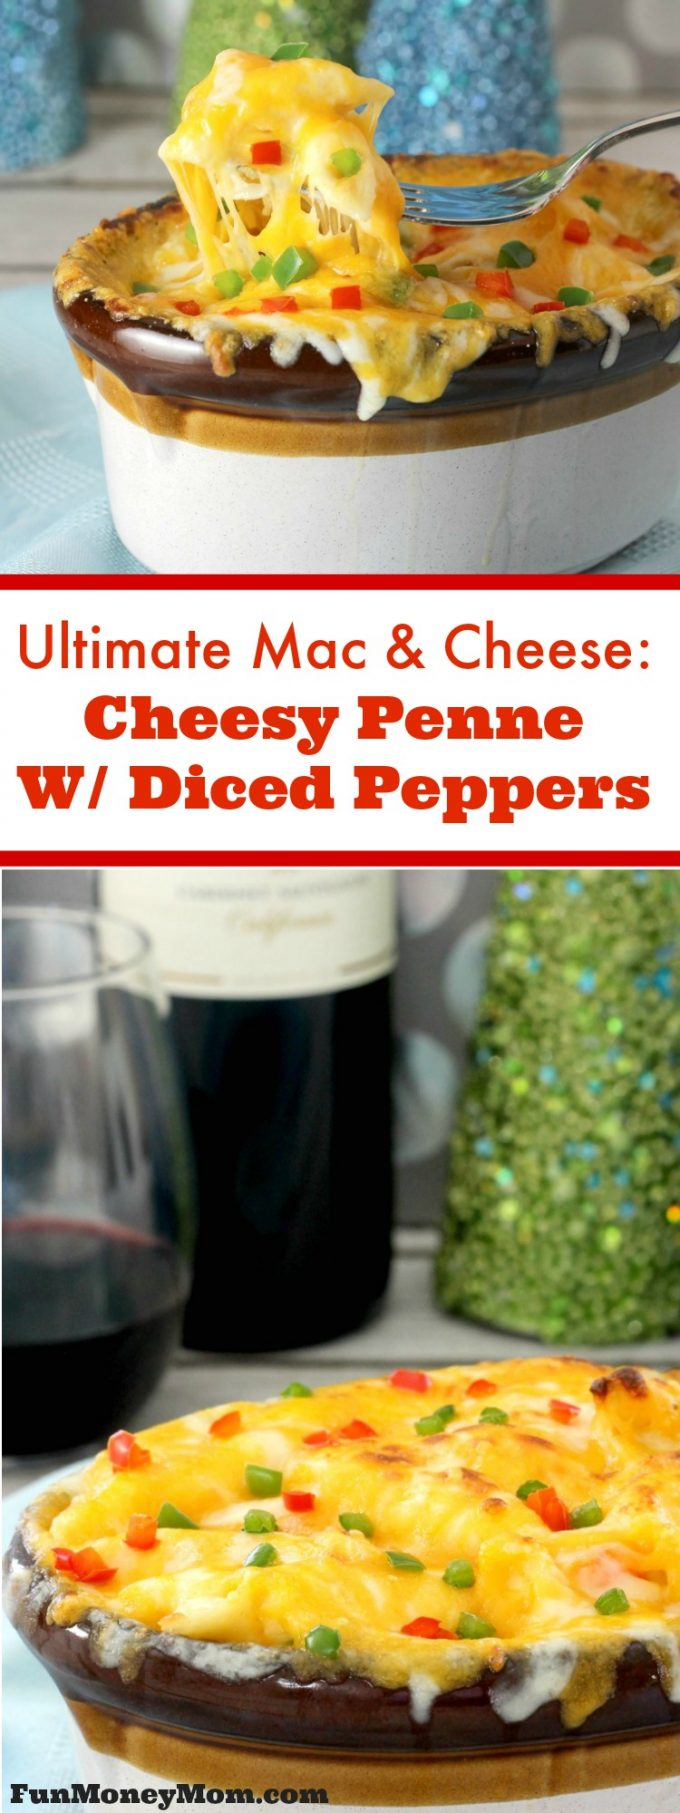 My family went nuts for this ultimate mac & cheese dish. Cheesy penne with peppers are the perfect side dish for any holiday dinner!